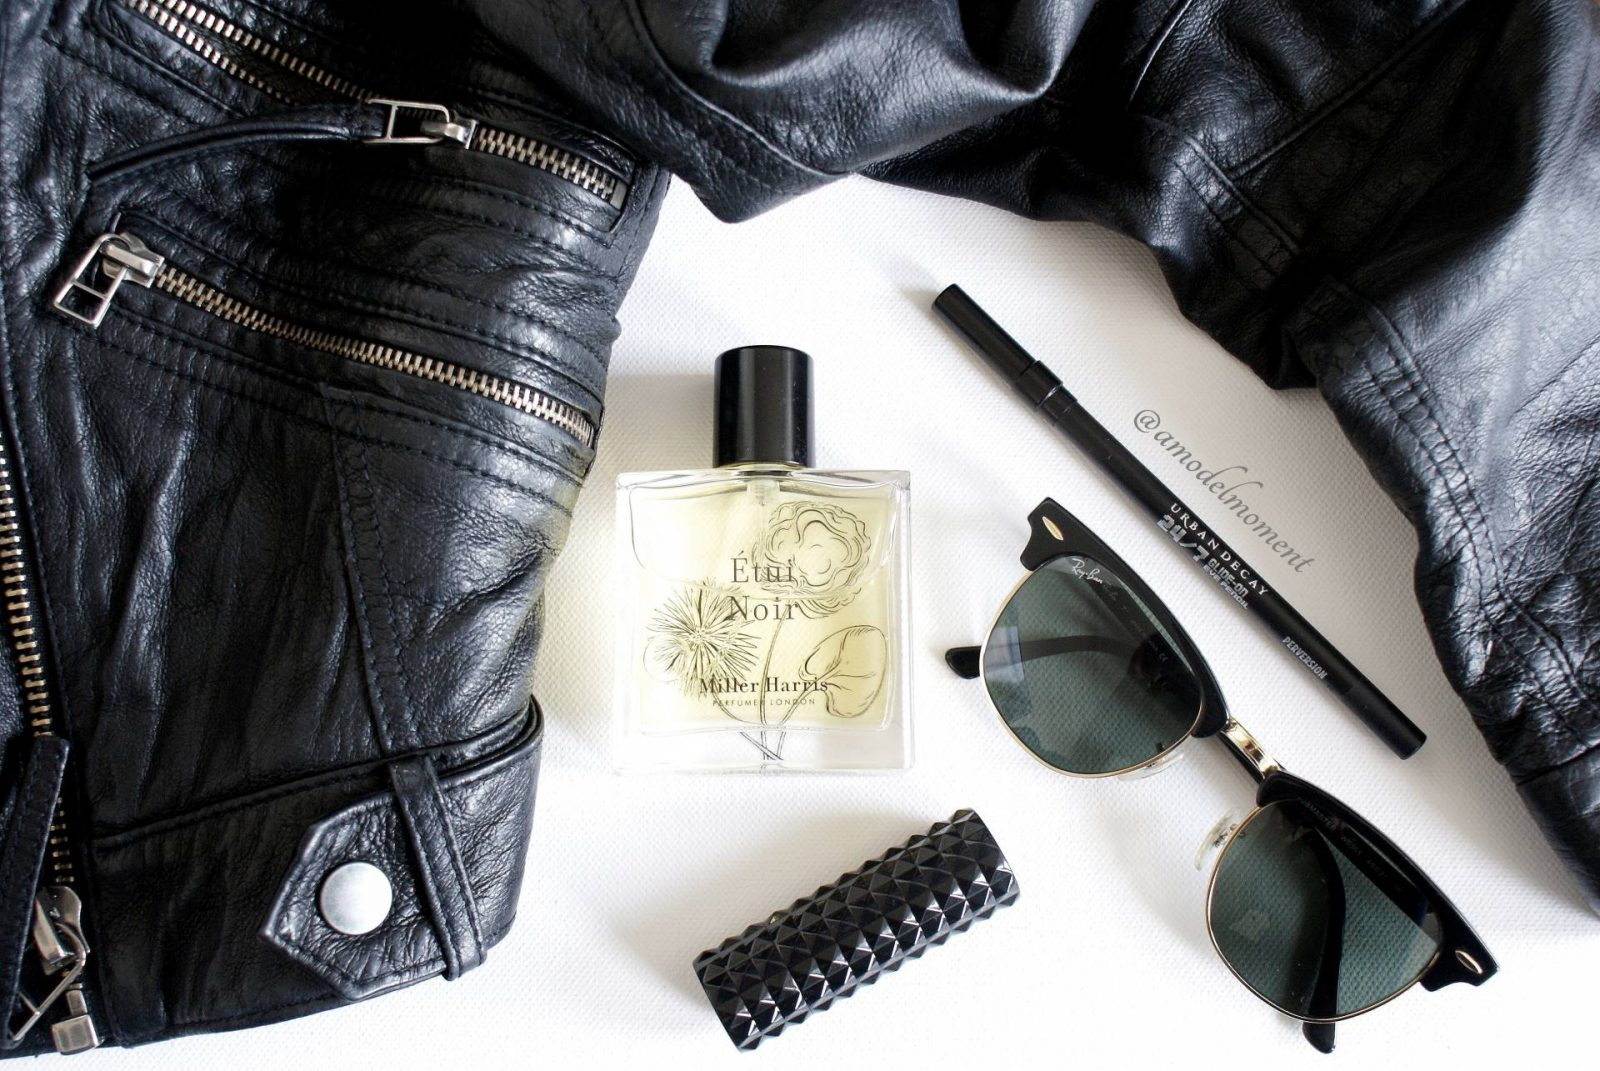 A Bold New British Scent … Étui Noir by Miller Harris